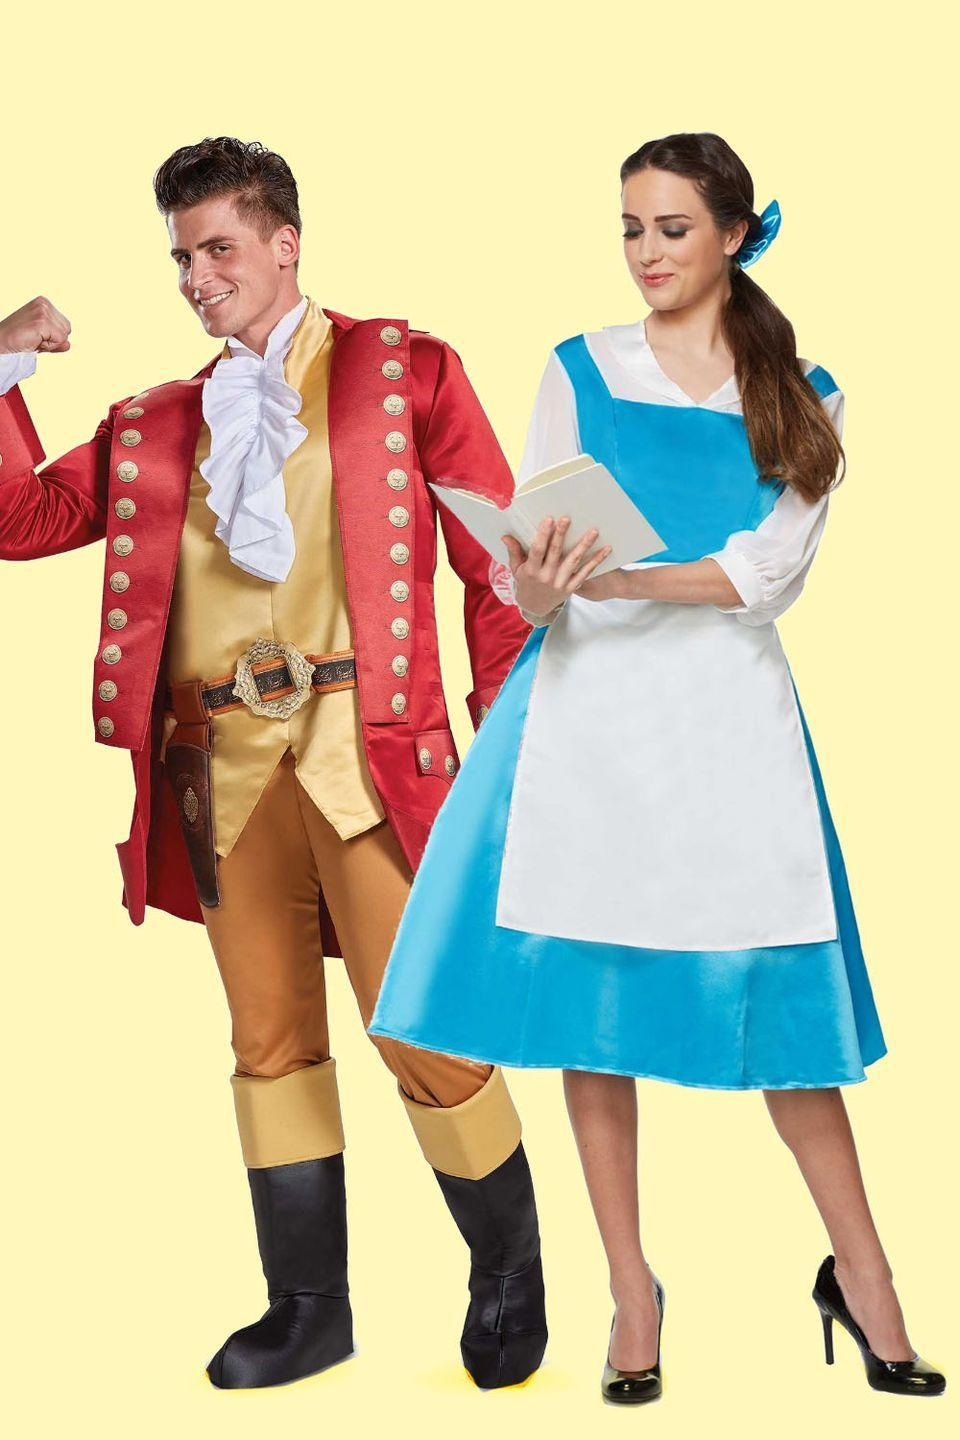 """<p>No one's slick as Gaston, no one's quick as Gaston, no one wins Halloween like Gaston! Yes, he's the villain, but he also has the catchiest song in<em> <a href=""""https://www.amazon.com/Beauty-Beast-Theatrical-Version-Watson/dp/B06XHR1RX1/?tag=syn-yahoo-20&ascsubtag=%5Bartid%7C10055.g.2625%5Bsrc%7Cyahoo-us"""" rel=""""nofollow noopener"""" target=""""_blank"""" data-ylk=""""slk:Beauty and the Beast"""" class=""""link rapid-noclick-resp"""">Beauty and the Beast</a></em>. (Sorry, Belle.)</p><p><a class=""""link rapid-noclick-resp"""" href=""""https://go.redirectingat.com?id=74968X1596630&url=https%3A%2F%2Fwww.spirithalloween.com%2Fproduct%2Ftv-movies-gaming%2Fmovies%2Fbeauty-and-the-beast%2Fadult-belle-blue-dress-costume-beauty-and-the-beast%2Fpc%2F1382%2Fc%2F3810%2Fsc%2F4241%2F134913.uts%3FthumbnailIndex%3D10&sref=https%3A%2F%2Fwww.goodhousekeeping.com%2Fholidays%2Fhalloween-ideas%2Fg2625%2Fhalloween-costumes-for-couples%2F"""" rel=""""nofollow noopener"""" target=""""_blank"""" data-ylk=""""slk:SHOP BELLE COSTUME"""">SHOP BELLE COSTUME</a></p><p> <a class=""""link rapid-noclick-resp"""" href=""""https://www.amazon.com/Disney-Beauty-Gaston-Costume-Medium/dp/B07G7DFD22/?tag=syn-yahoo-20&ascsubtag=%5Bartid%7C10055.g.2625%5Bsrc%7Cyahoo-us"""" rel=""""nofollow noopener"""" target=""""_blank"""" data-ylk=""""slk:SHOP GASTON COSTUME"""">SHOP GASTON COSTUME</a></p>"""